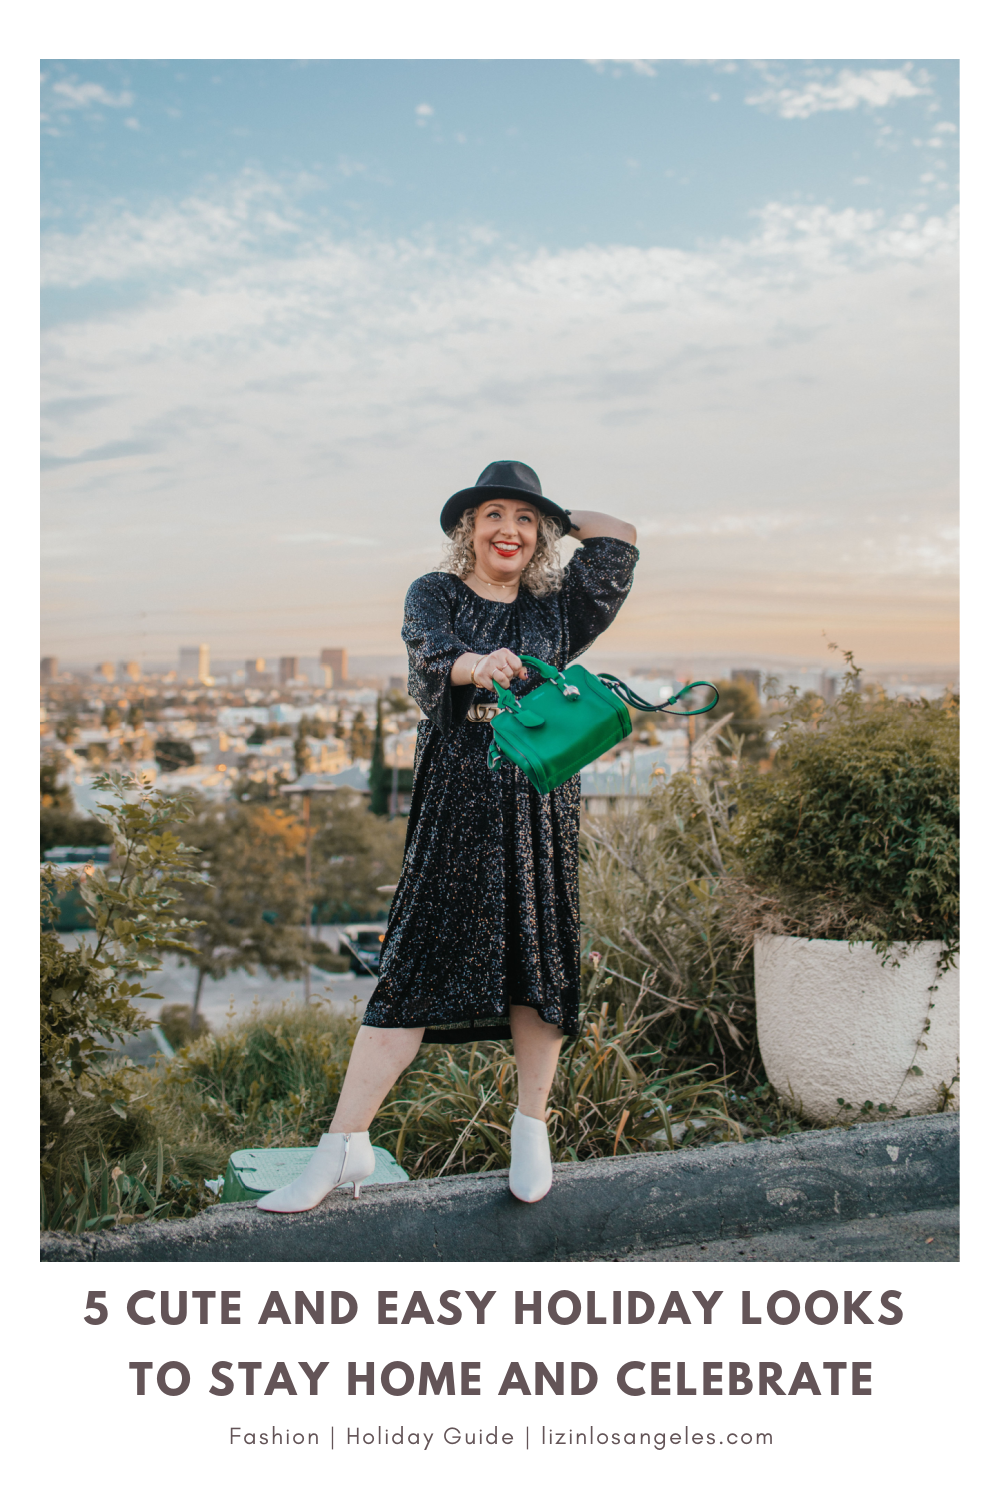 5 Cute and Easy Holiday Looks to Stay Home and Celebrate, a blog post by Liz in Los Angeles, top Los Angeles Lifestyle Blogger, an image of a blonde women in black sequin dress for the holidays